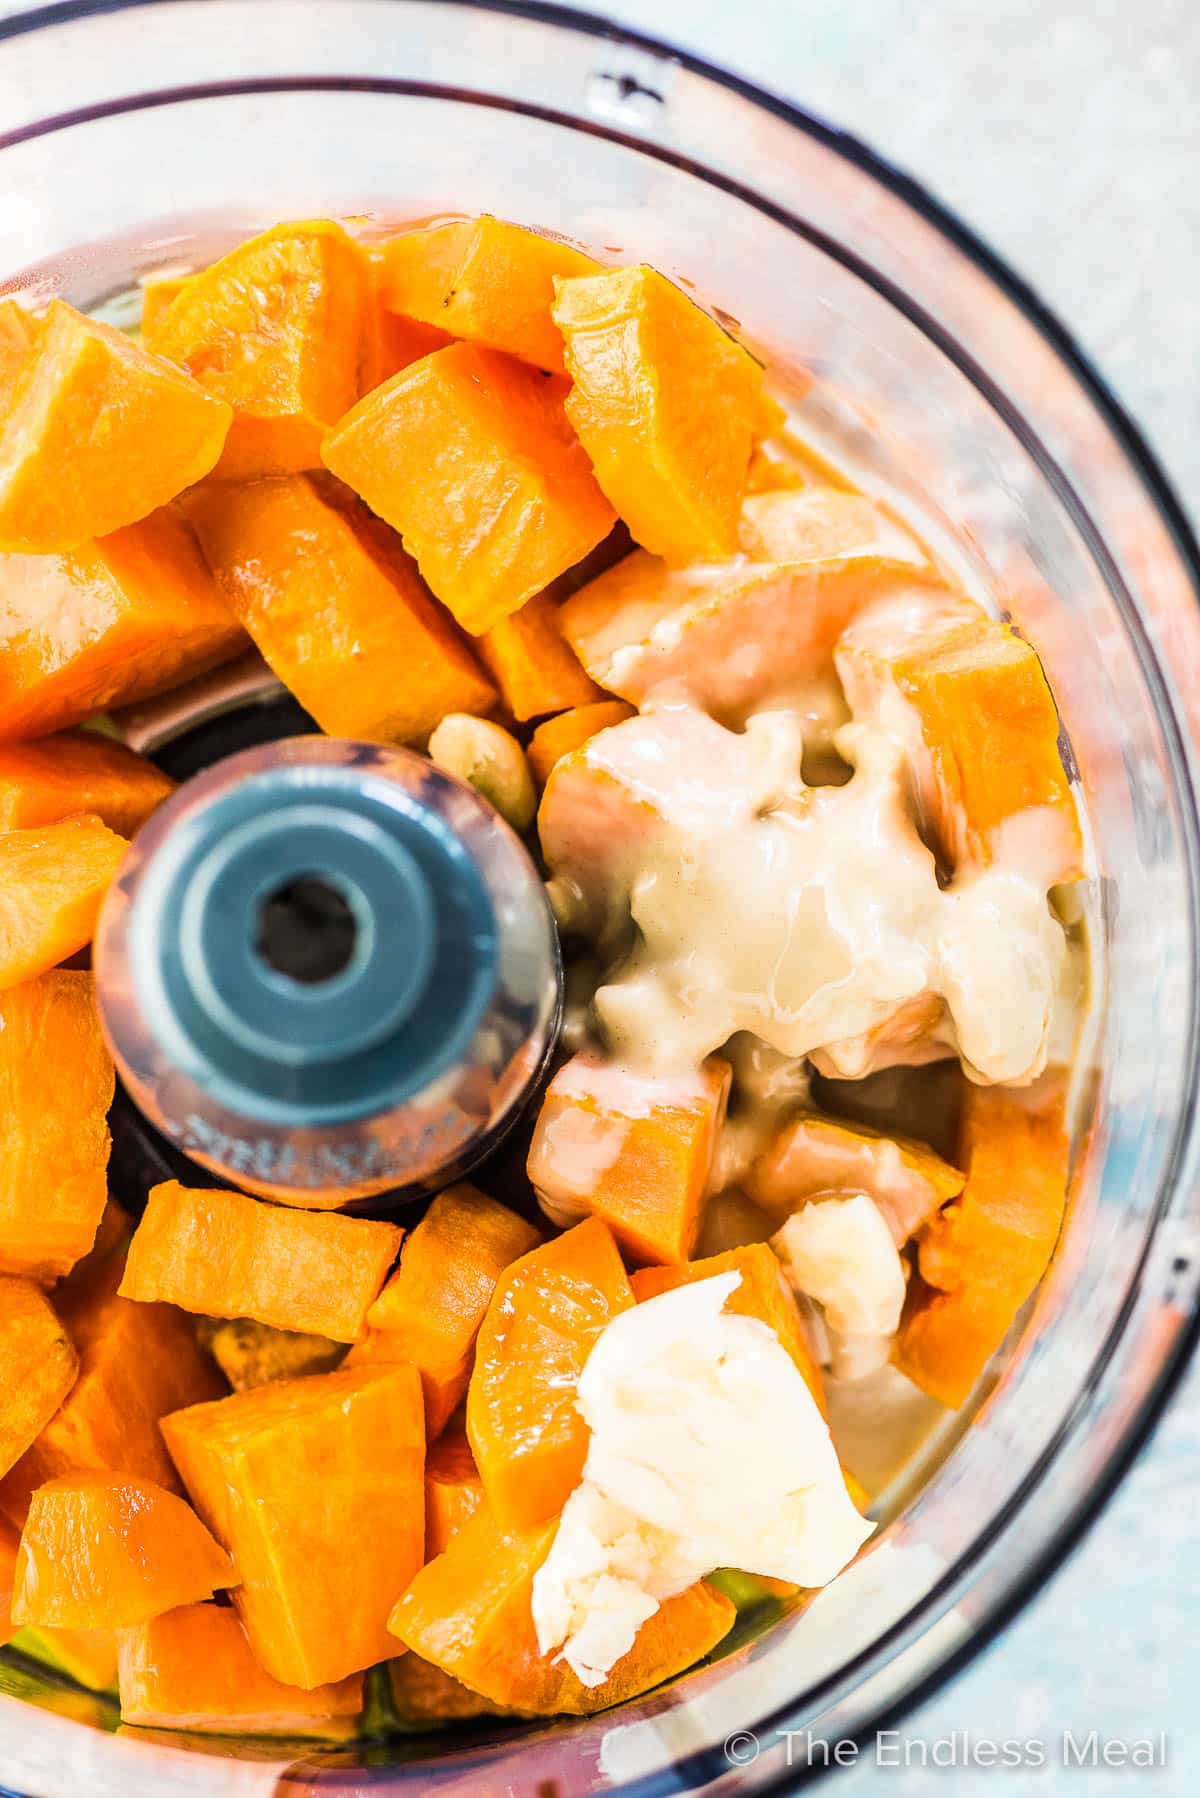 All the ingredients for this sweet potato hummus in a food processor.